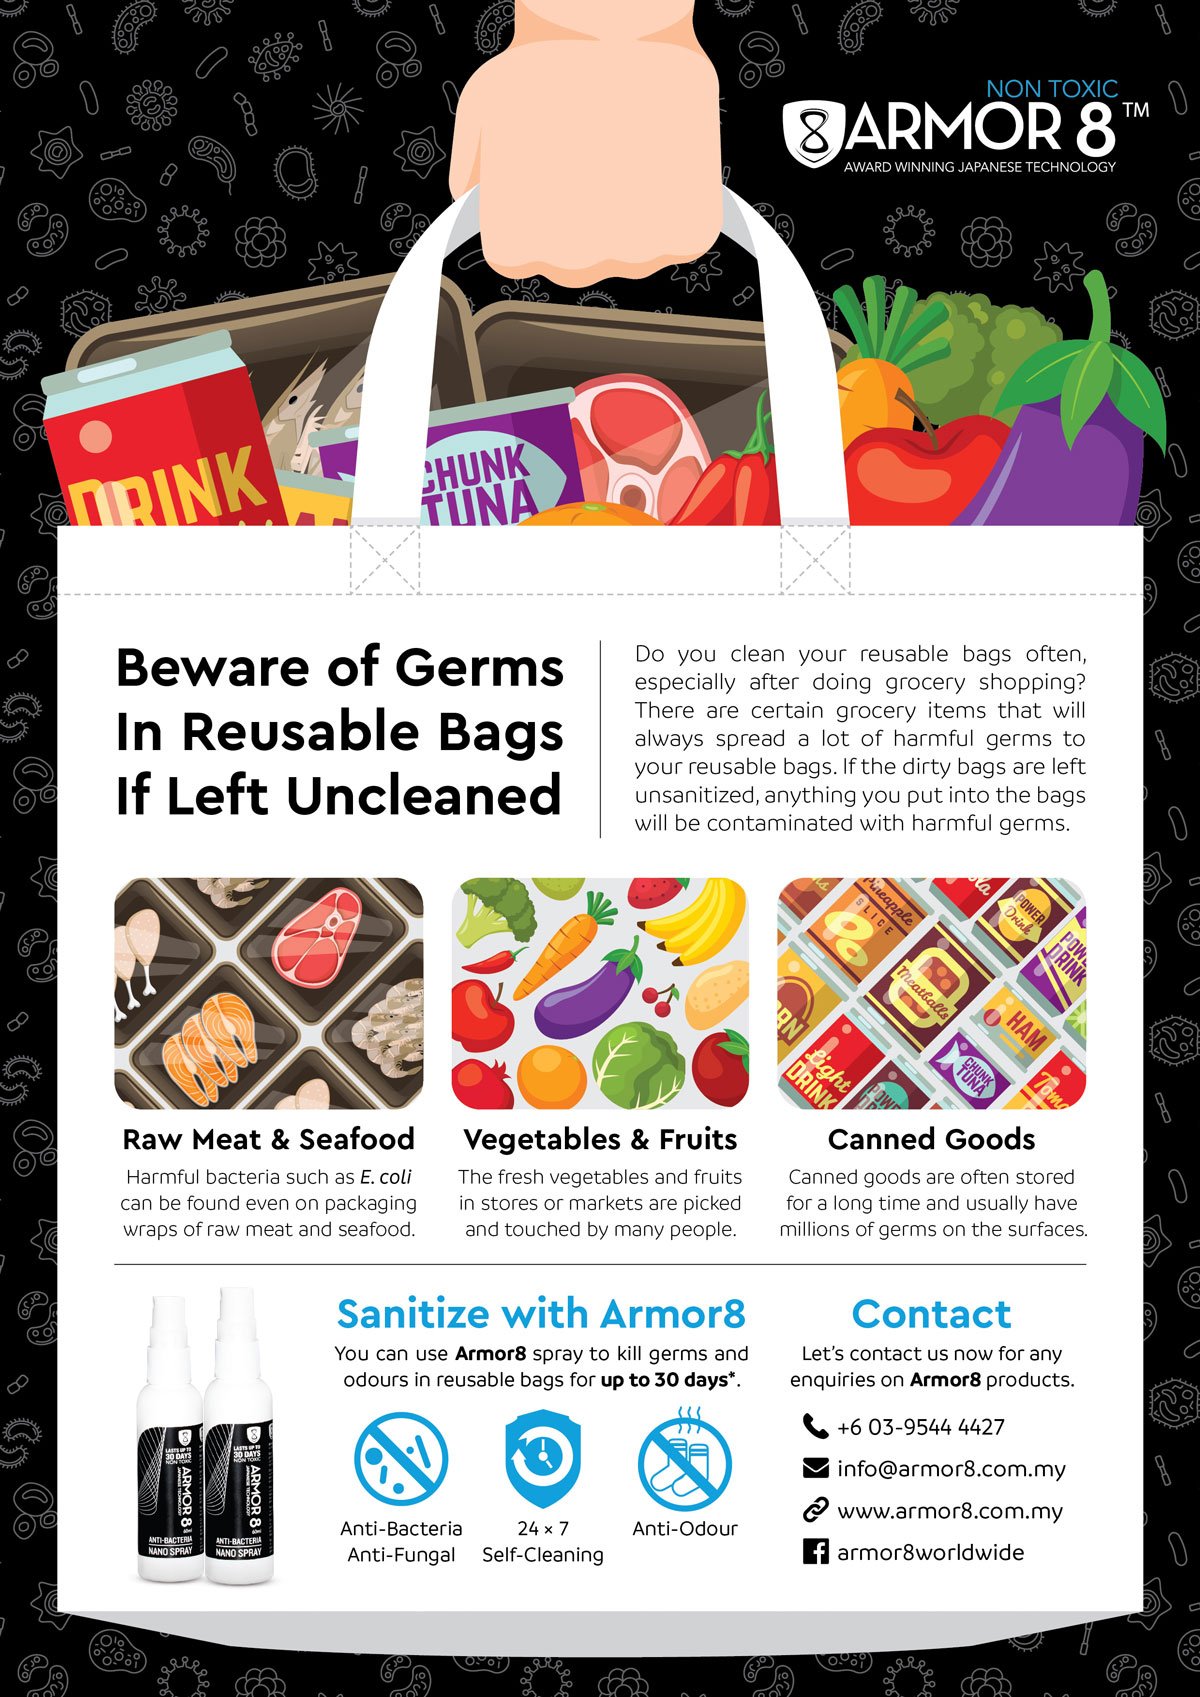 Armor8 Beware of Germs in Reusable Bags Flyer Design 06